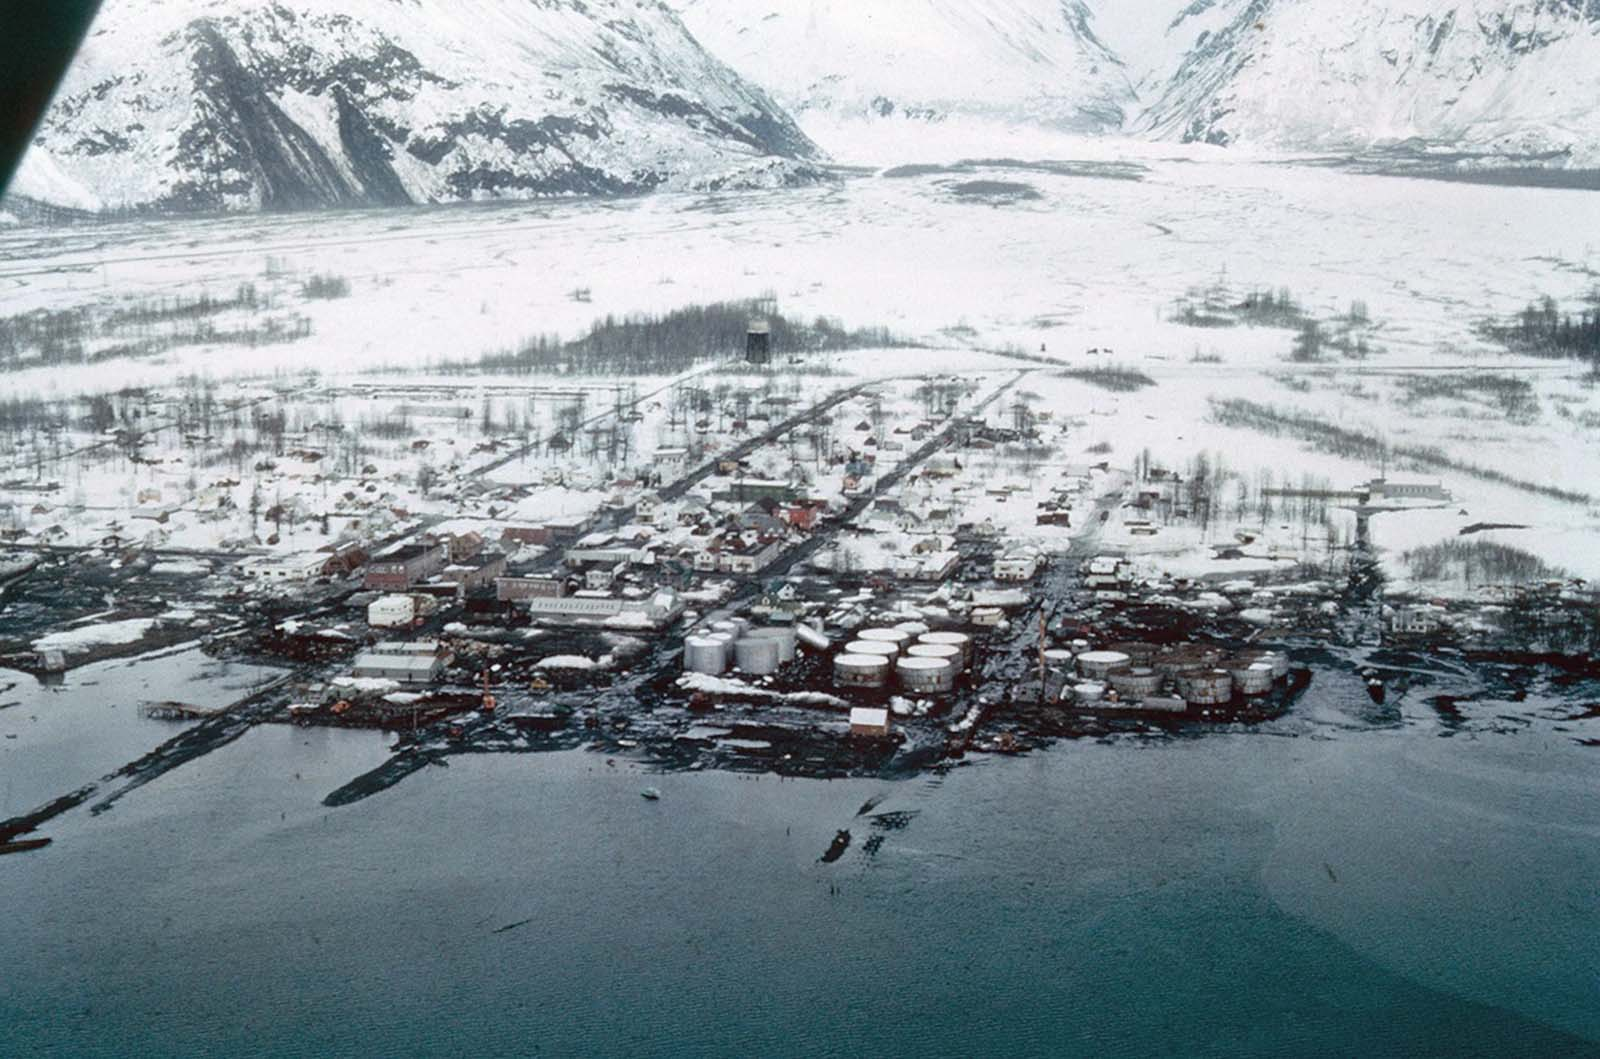 A view of the destruction of Valdez, Alaska. Thirty-one residents died during the earthquake and subsequent tsunami. Instability and vulnerability to future tsunamis made the old town site too dangerous to rebuild, so the town was relocated several miles west to more stable ground, and rebuilt.